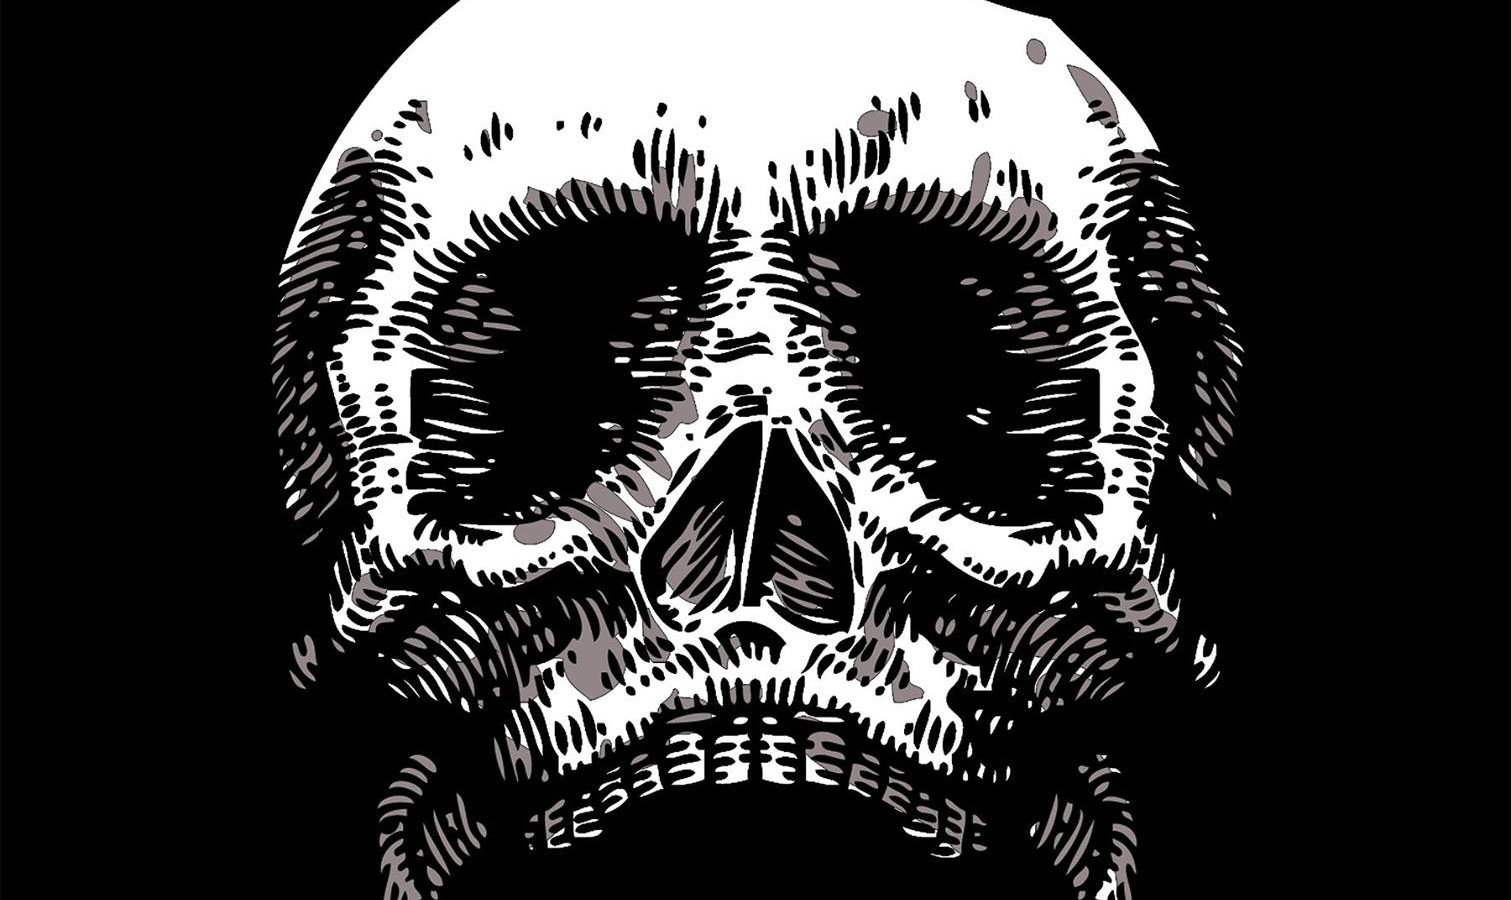 Close-up illustration of human skull